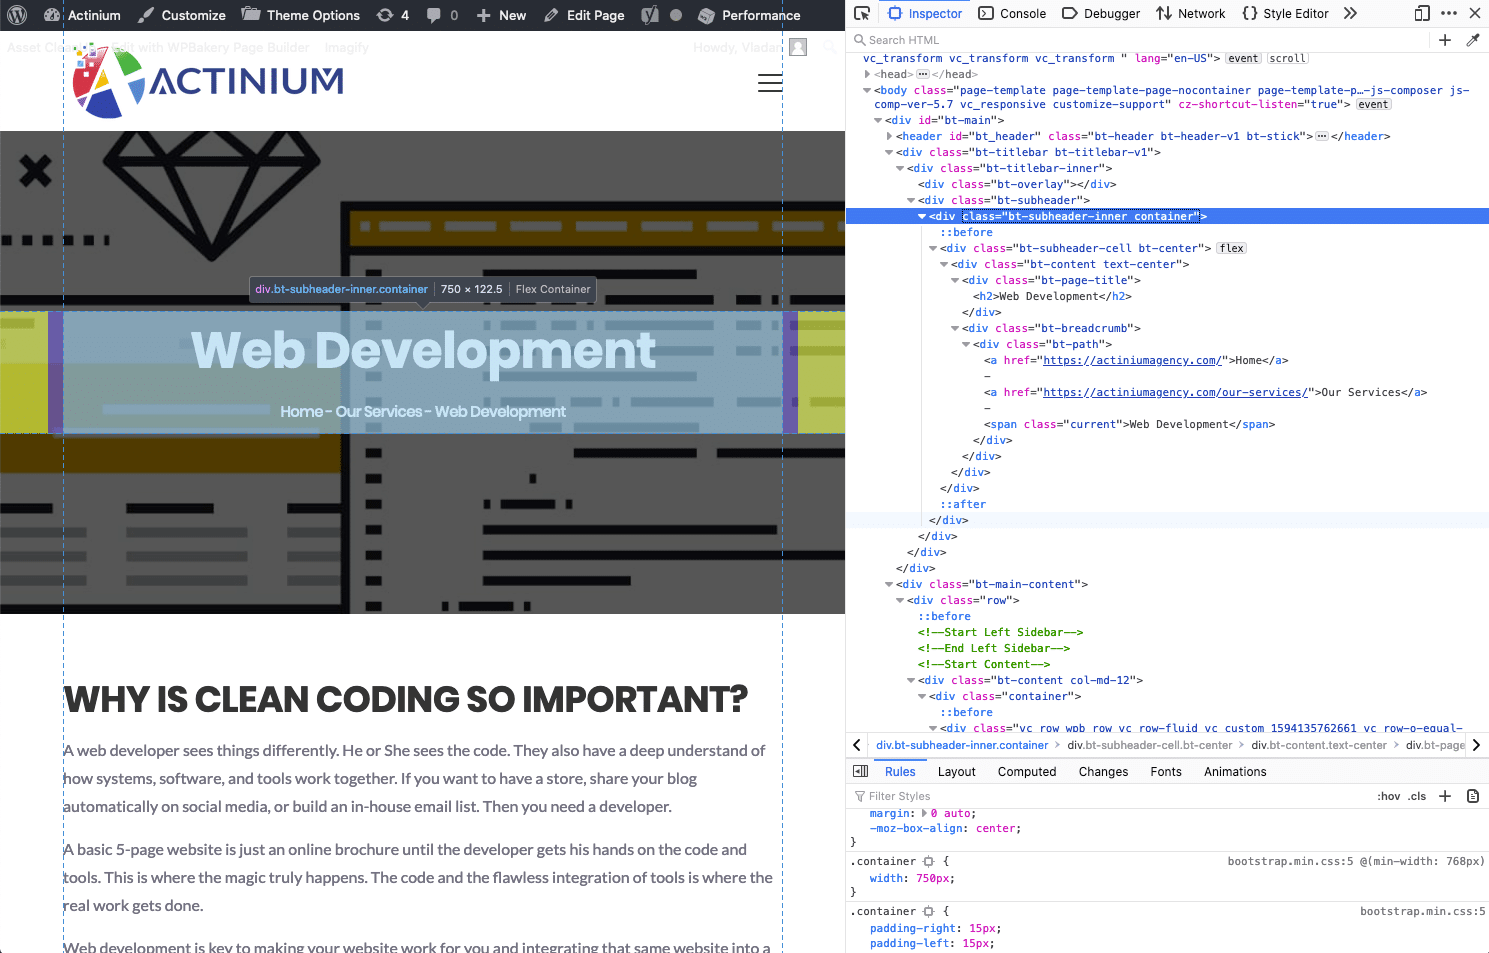 web development company Actinium